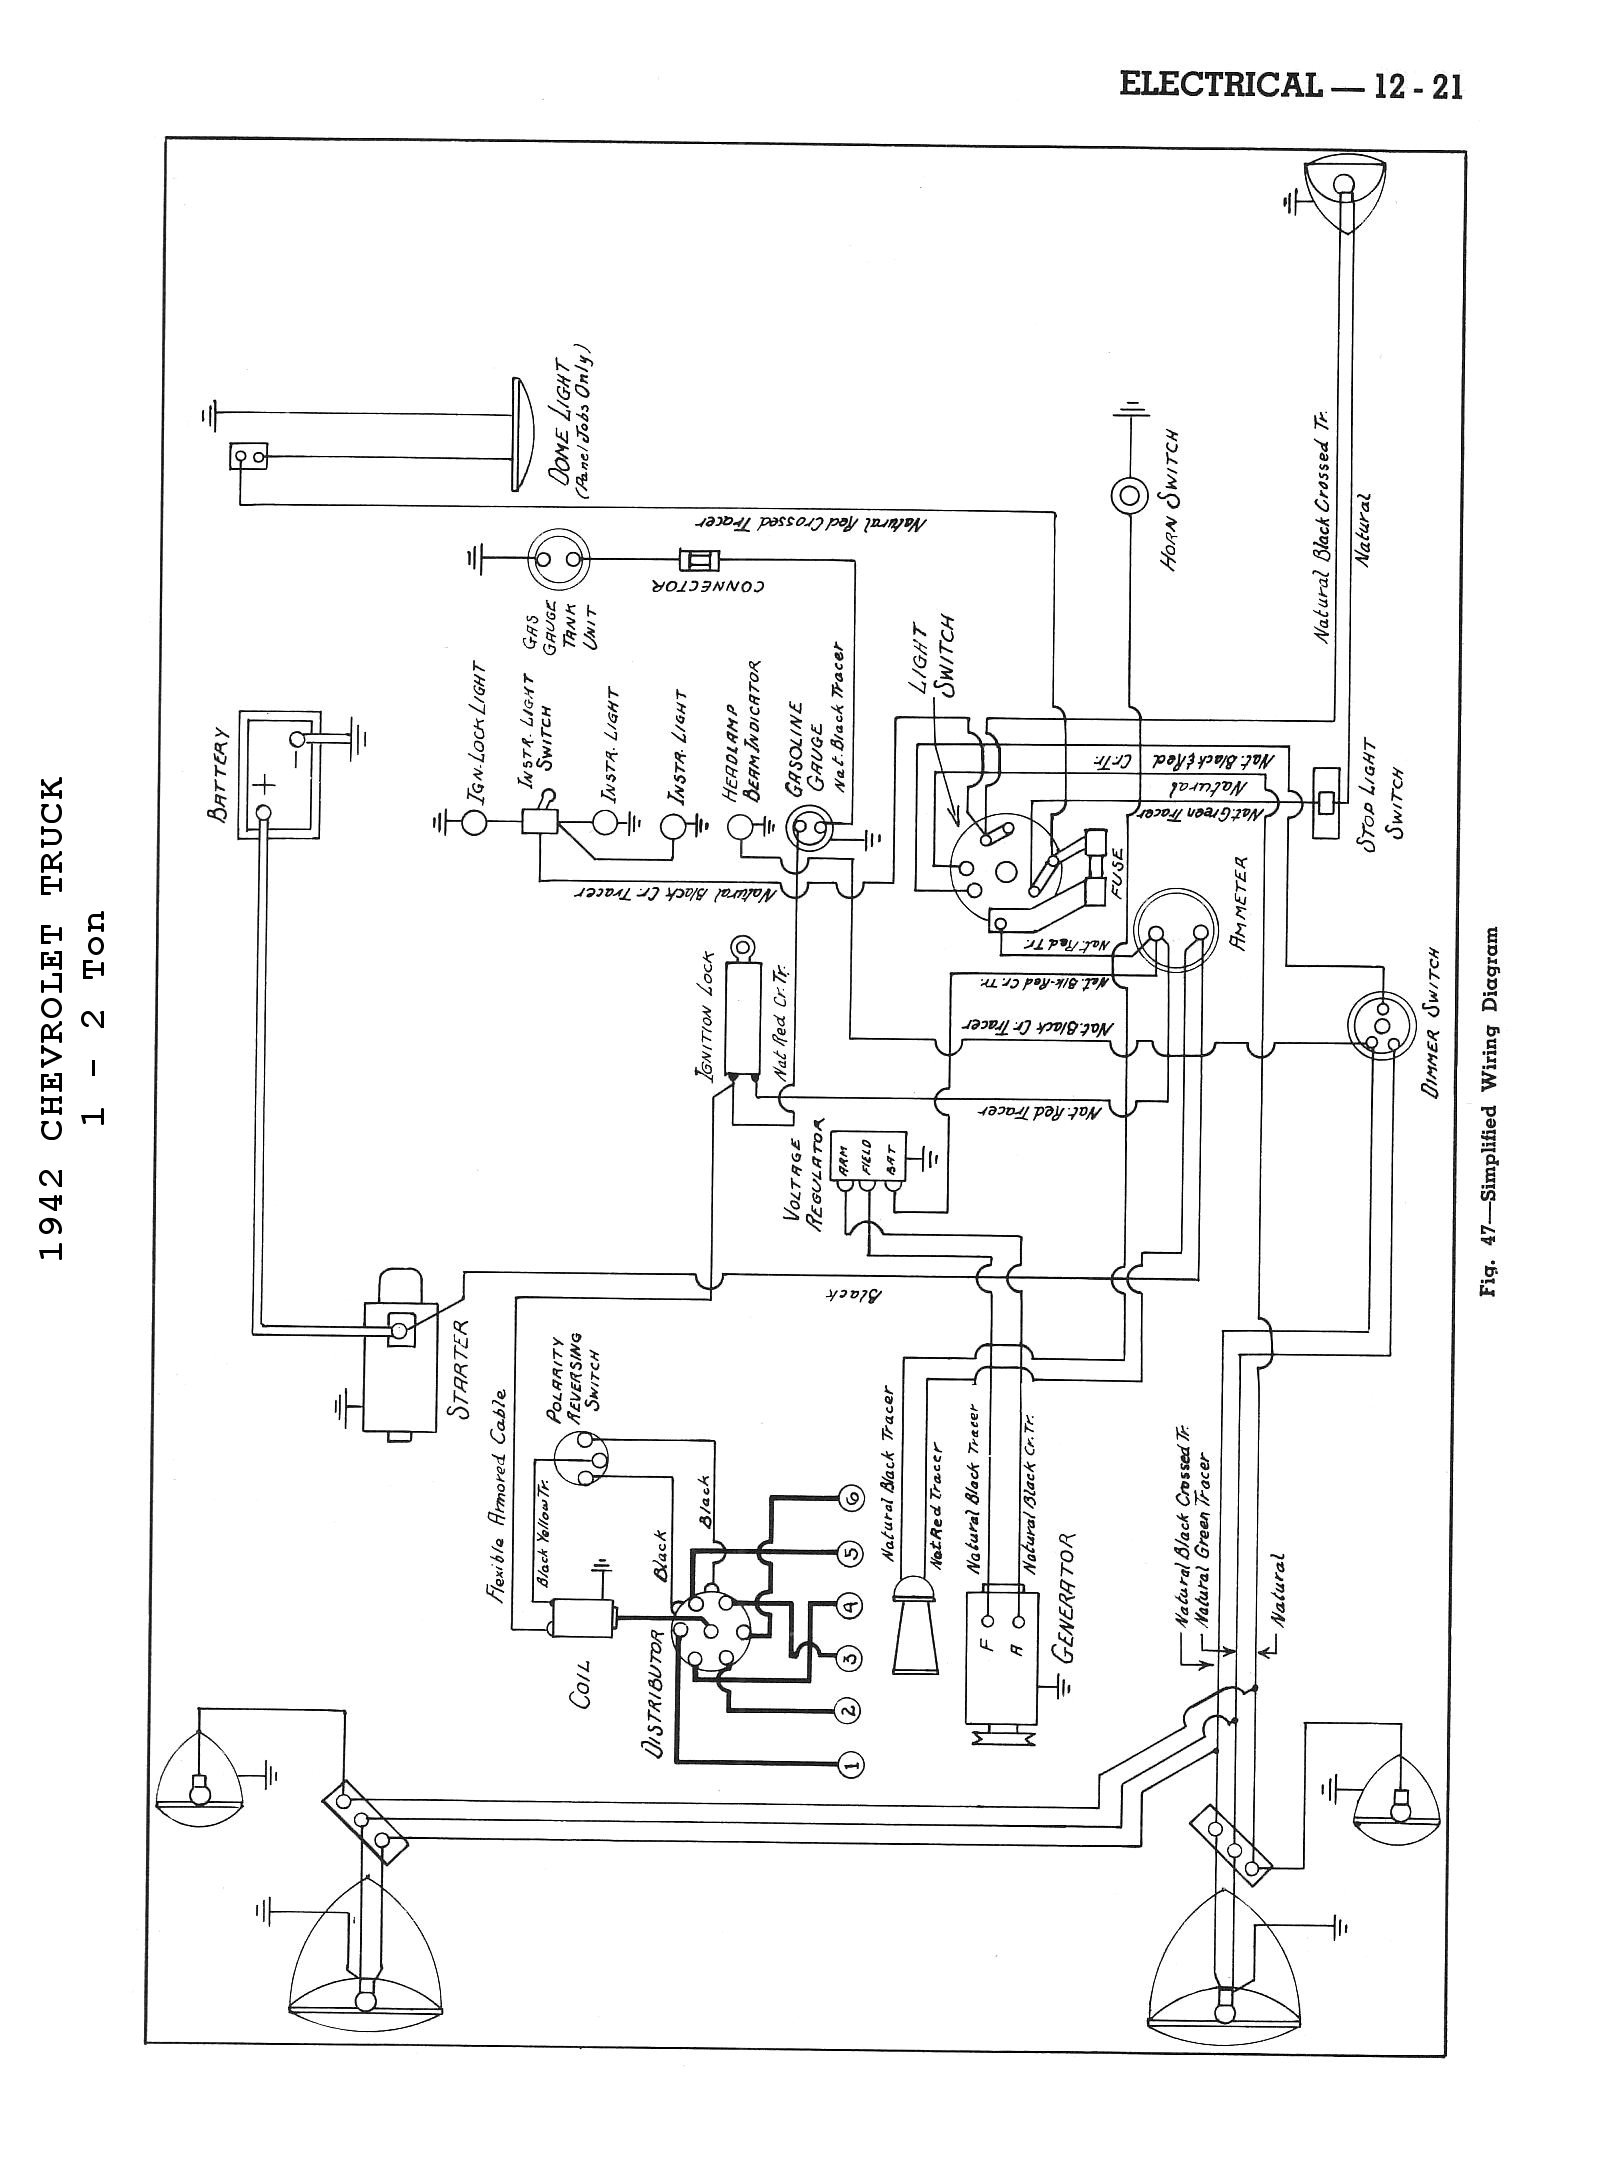 42cm4x2t1221 cm wiring diagram cm hoist wiring diagram \u2022 wiring diagrams j apollo series 60 wiring diagram at aneh.co